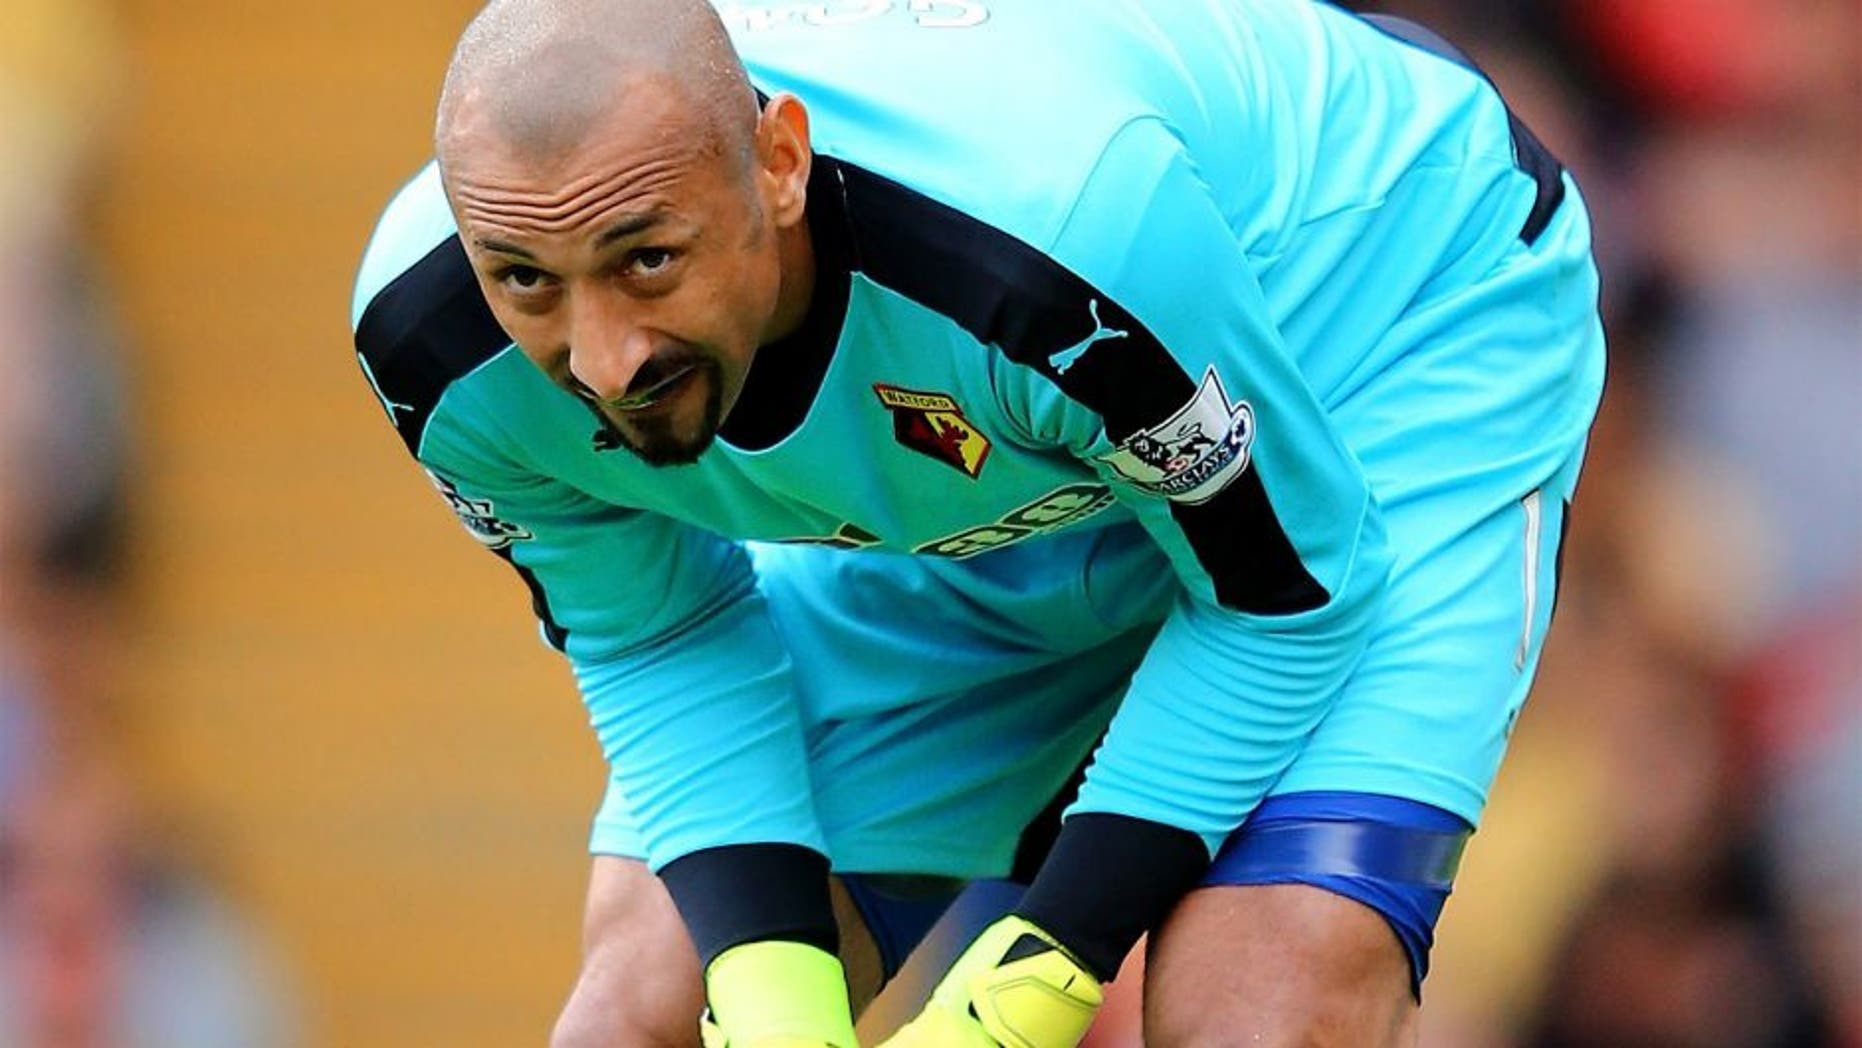 WATFORD, ENGLAND - AUGUST 23: Heurelho Gomes of Watford in action during the Barclays Premier League match between Watford and Southampton at Vicarage Road on August 23, 2015 in Watford, United Kingdom. (Photo by Richard Heathcote/Getty Images)